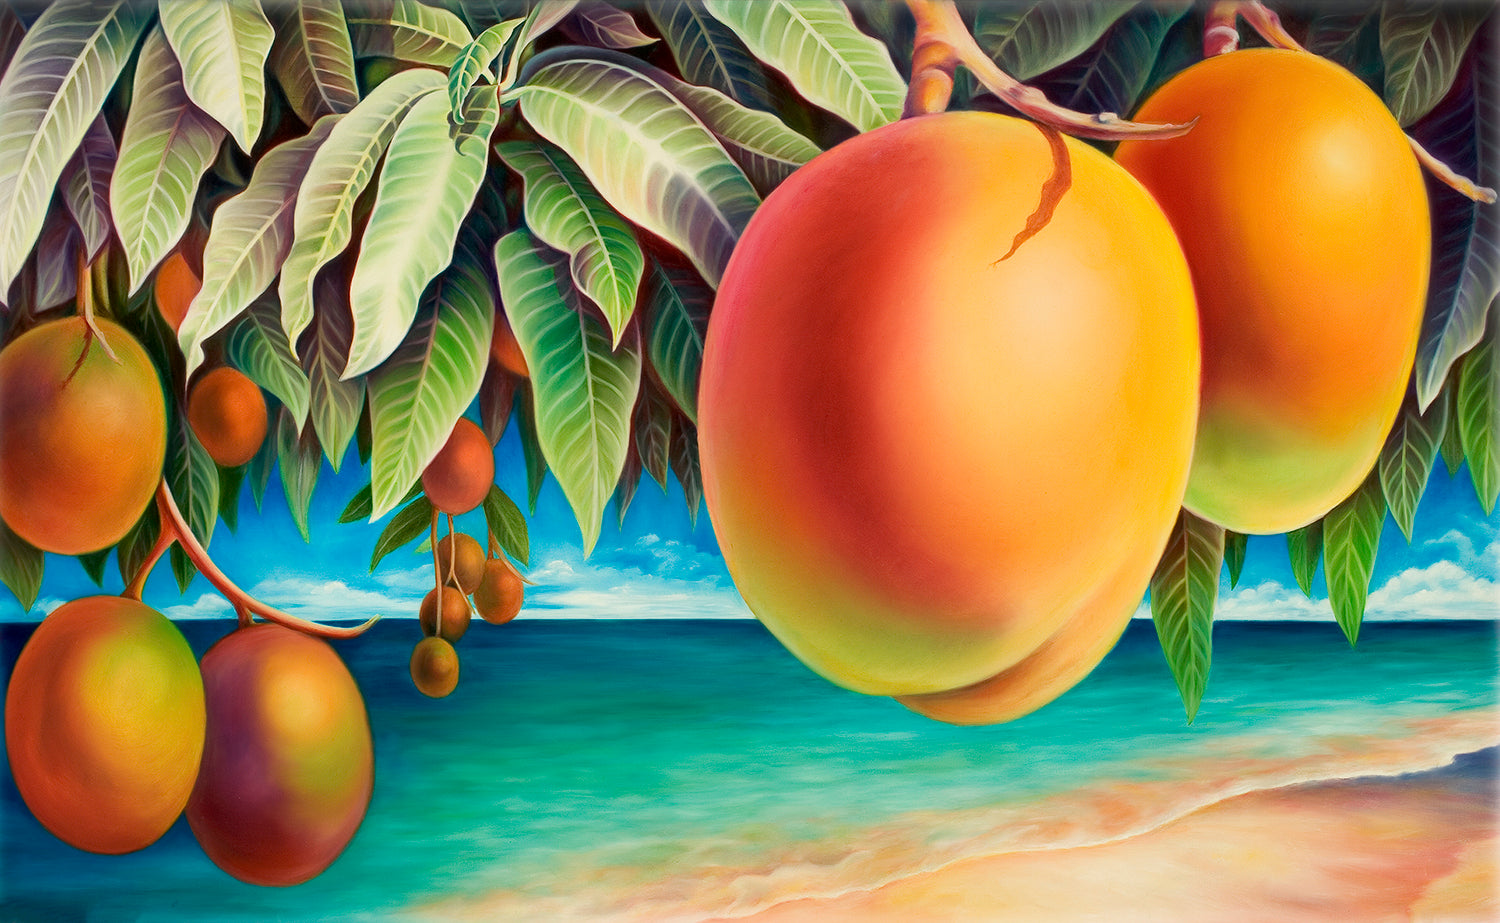 Mangoes on the Beach